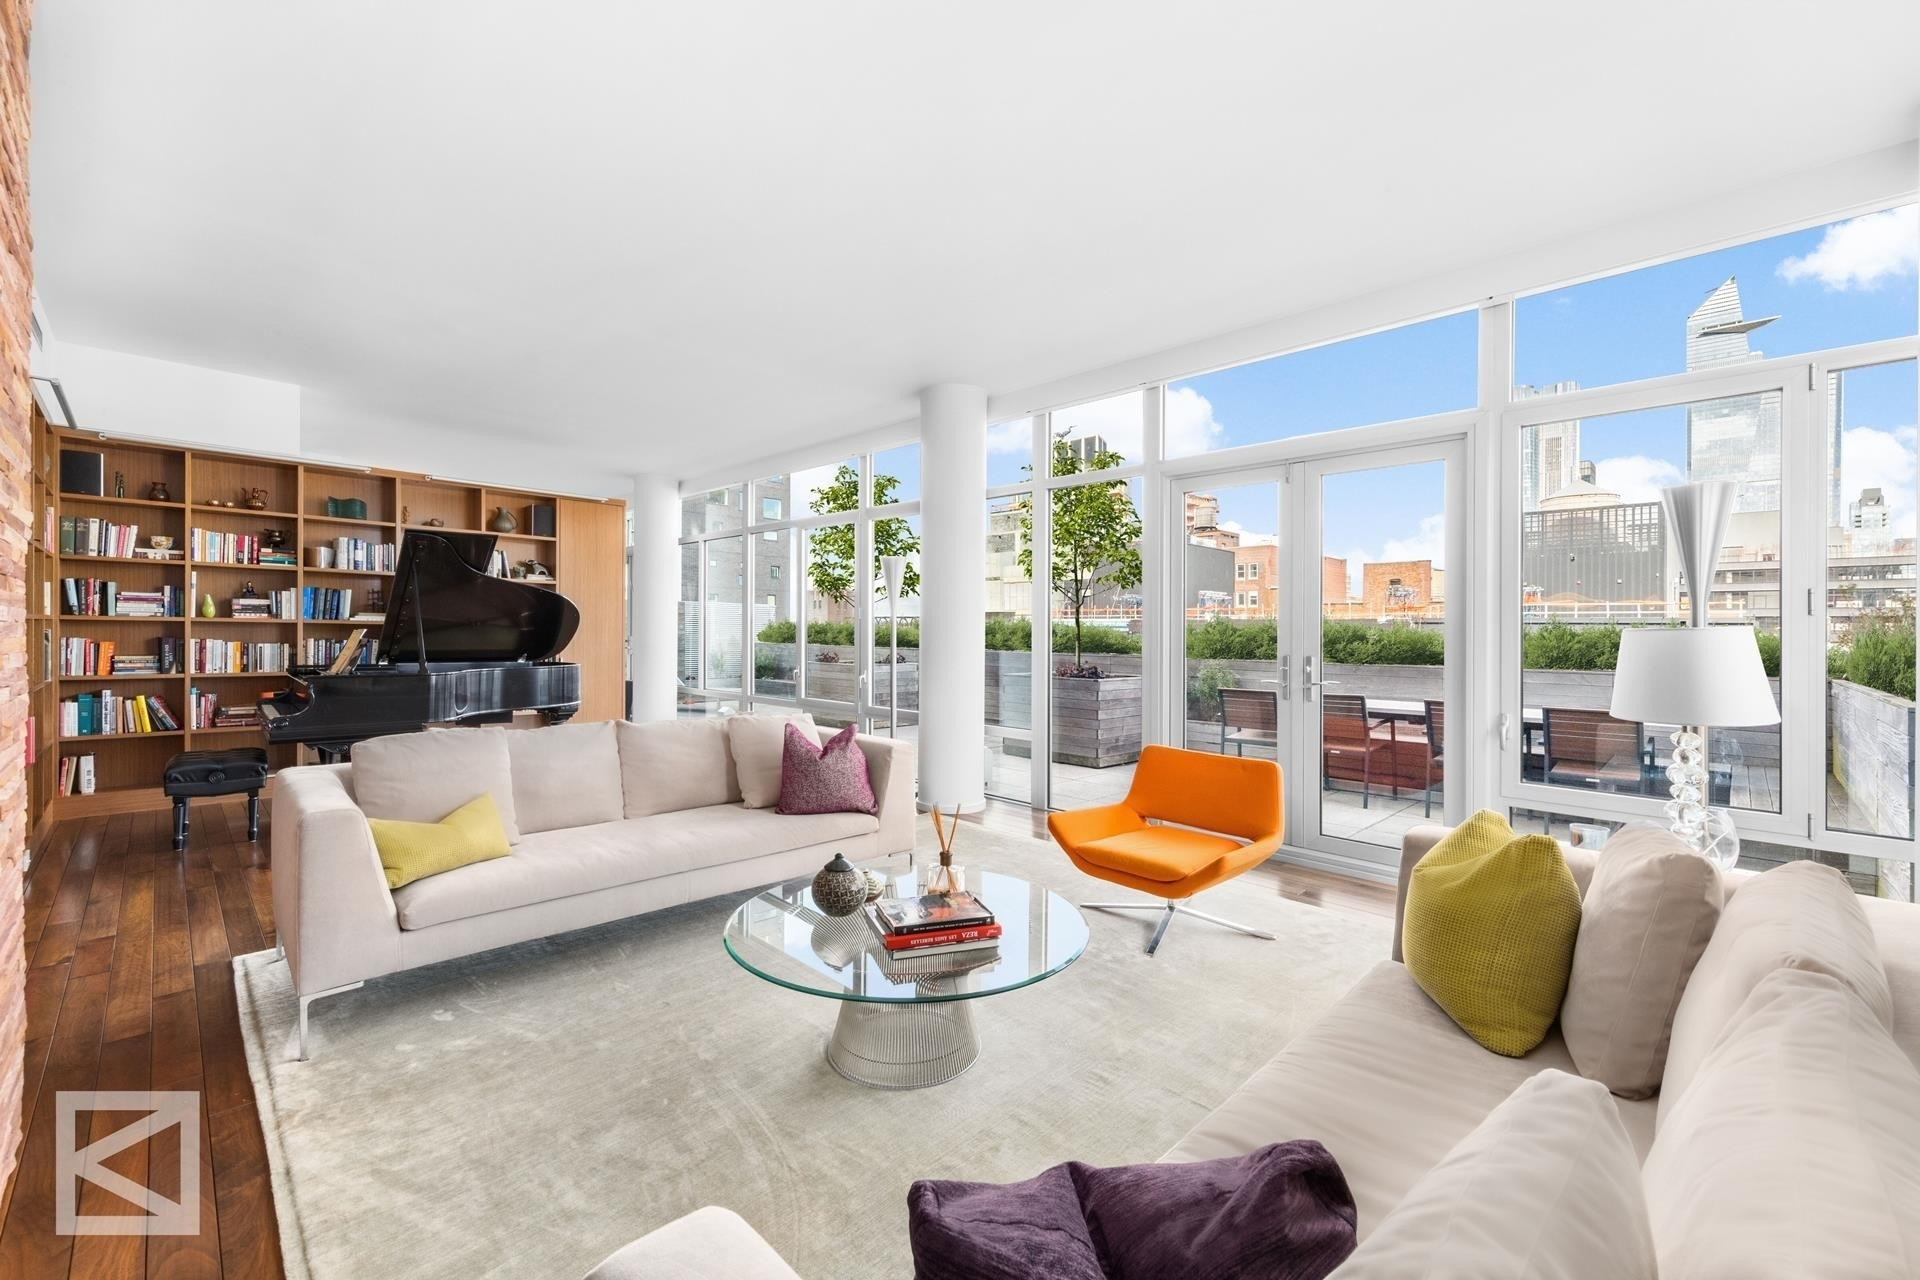 1. Condominiums for Sale at 520 West Chelsea, 520 West 19th St, PHA Chelsea, New York, NY 10011